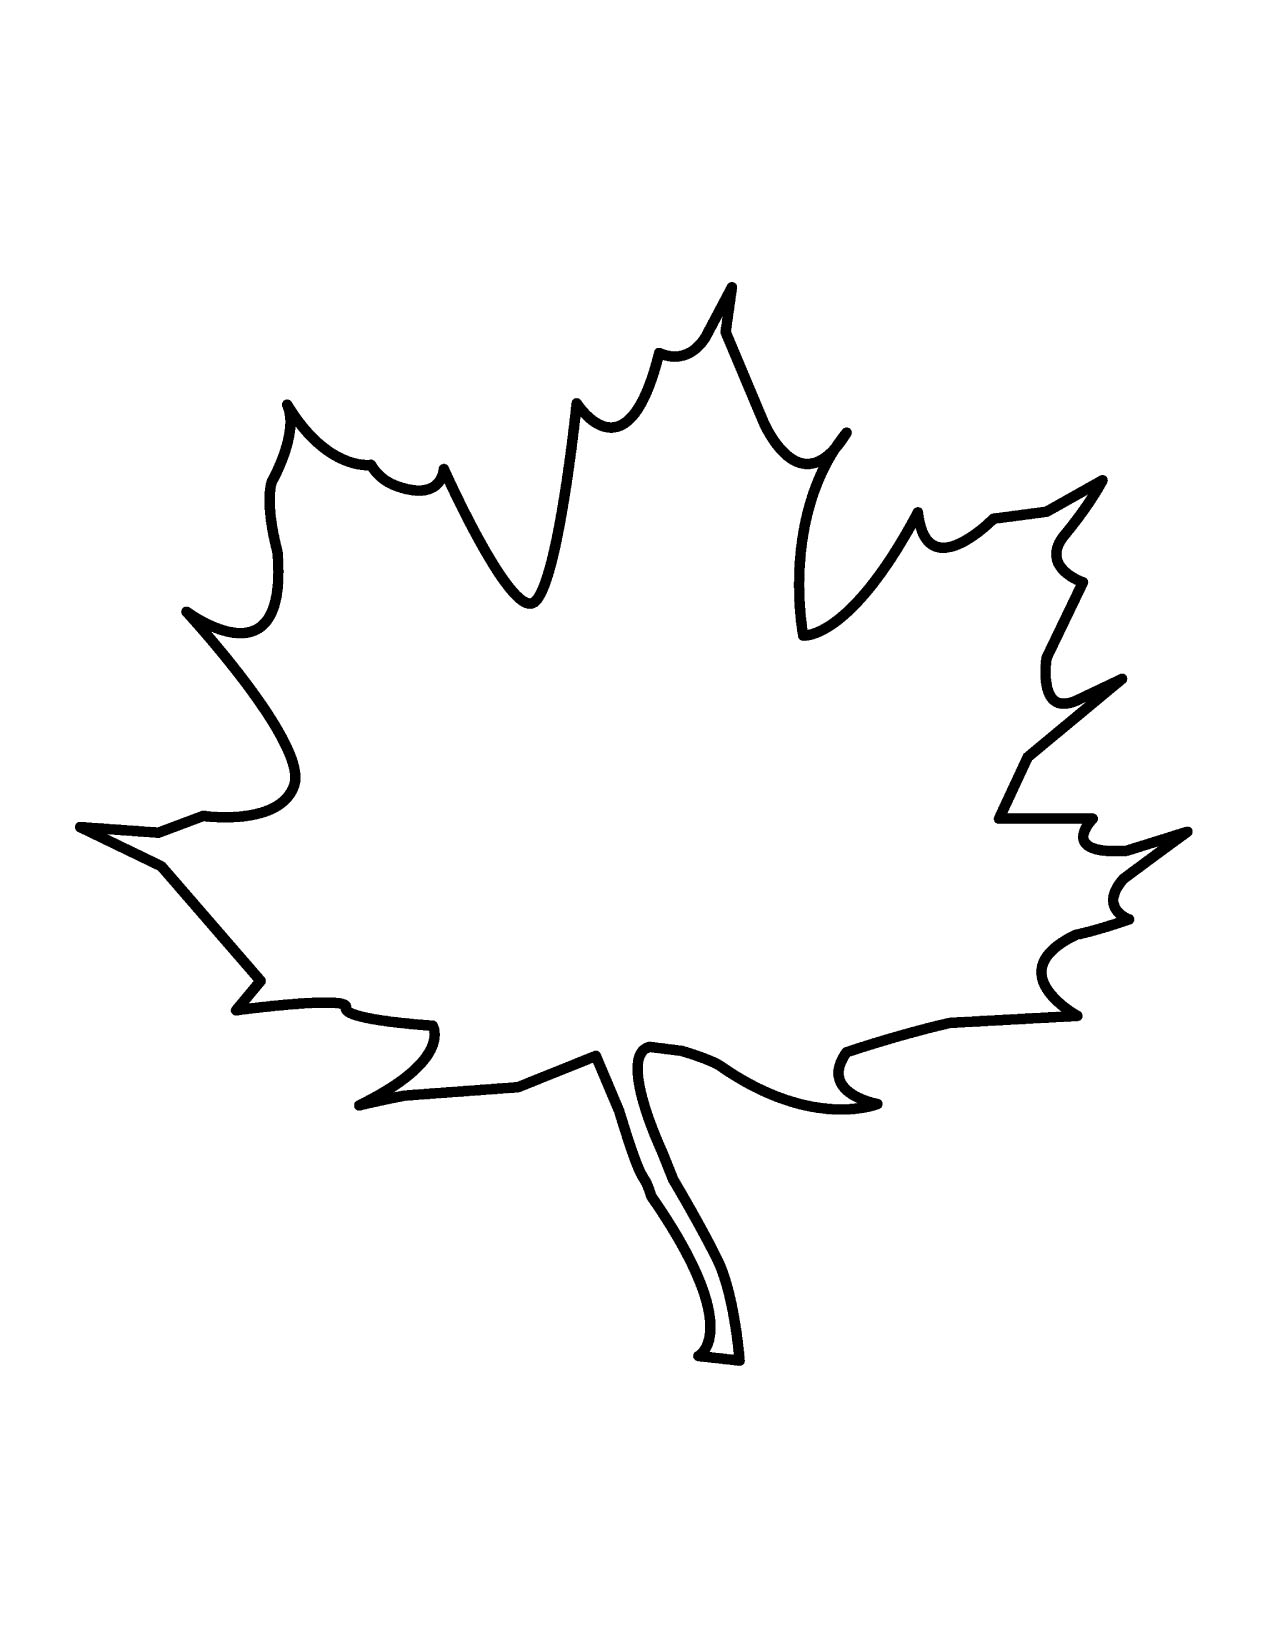 hight resolution of 1275x1650 18 fall leaves outline free cliparts that you can download to you